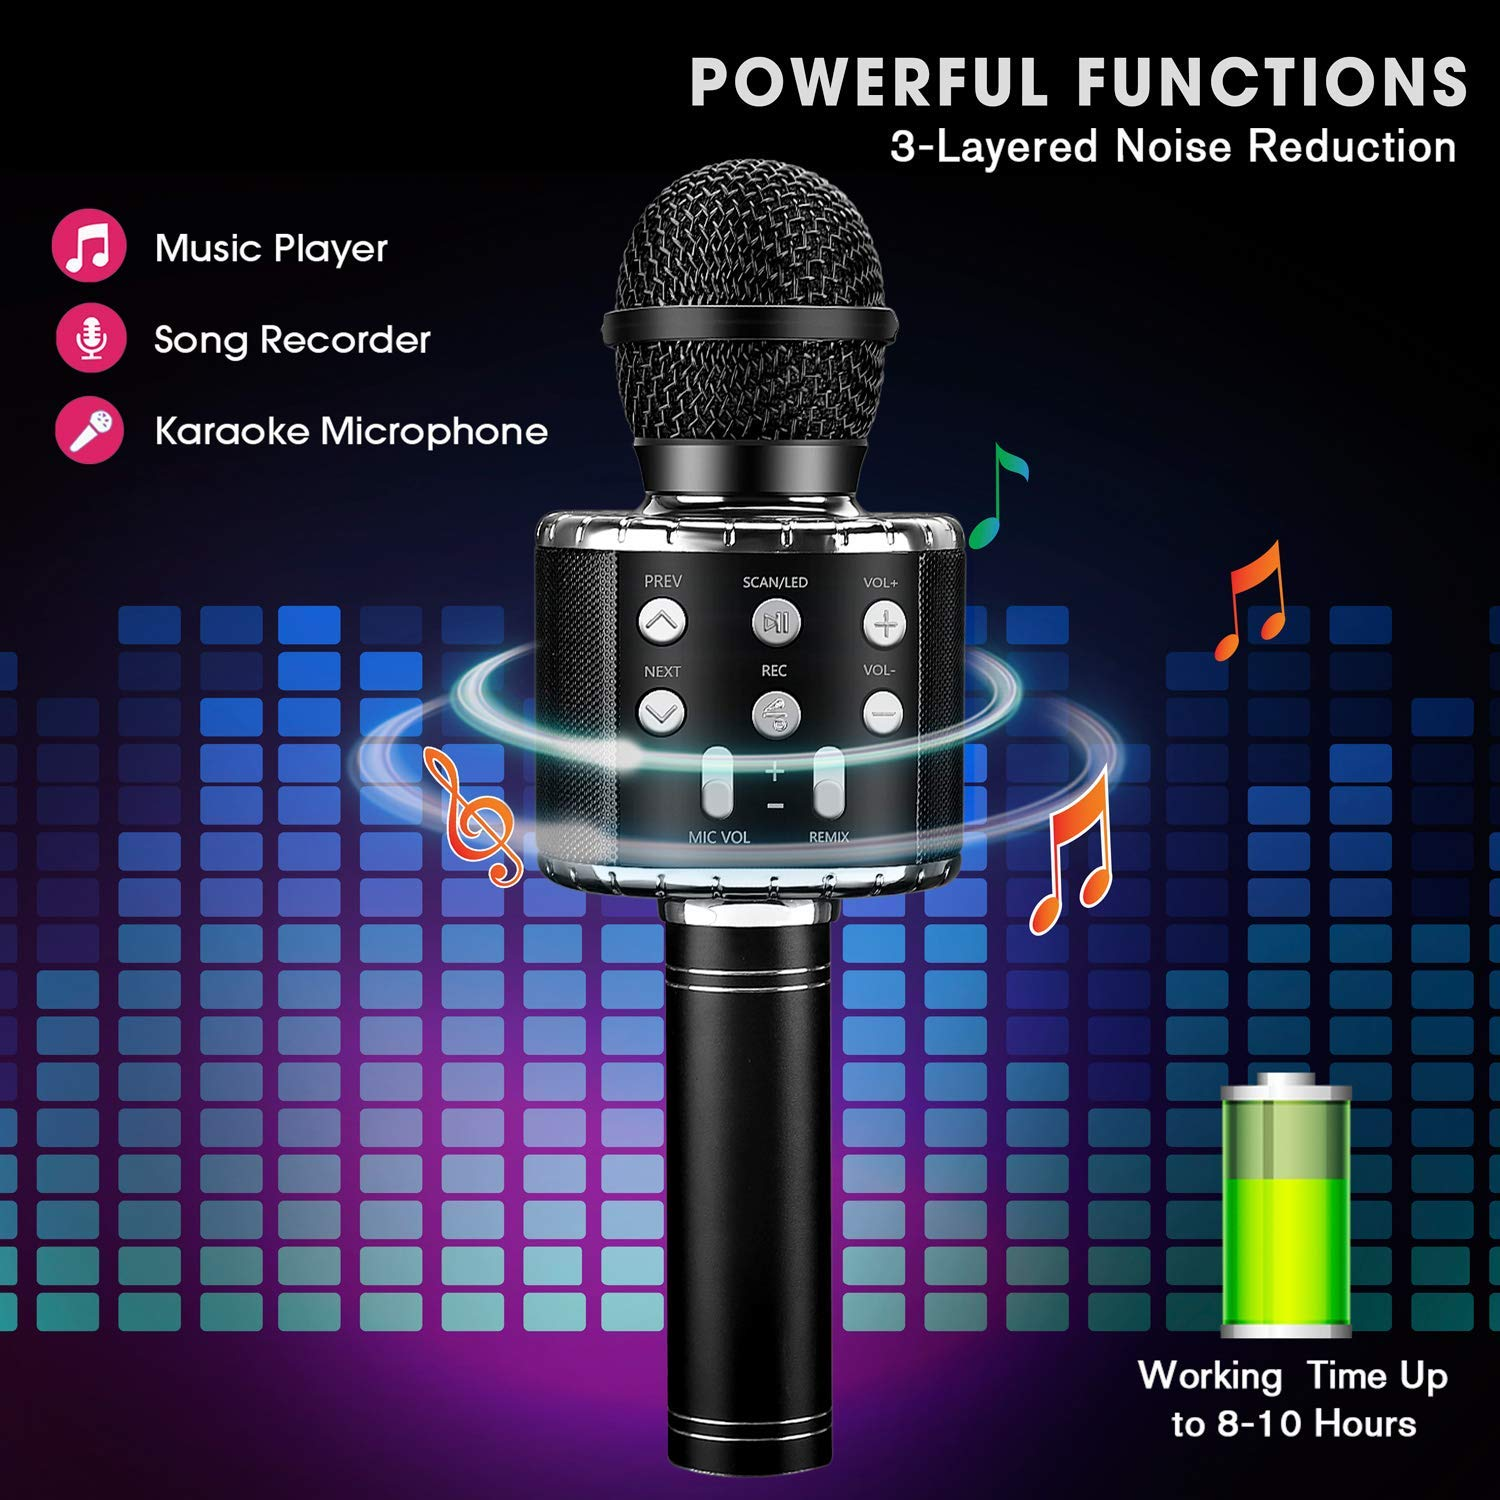 Wireless 4 in 1 Bluetooth Karaoke Microphone, Portable Speaker Machine, Handheld Home KTV Player with Record Function